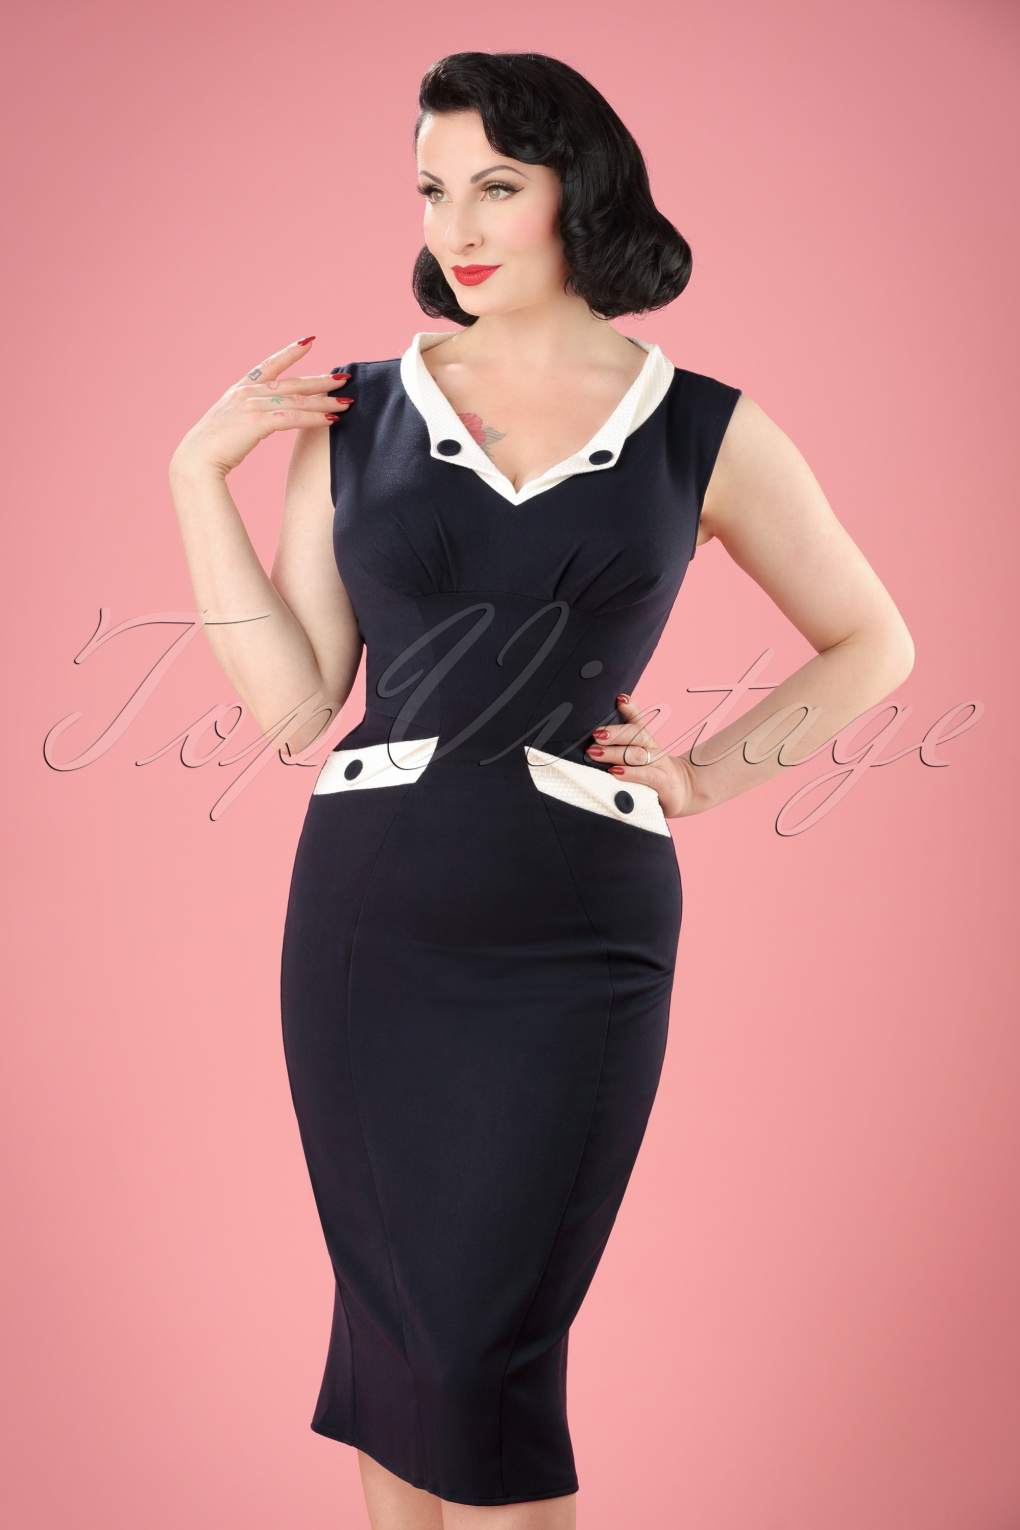 Wiggle Dresses | Pencil Dresses 50s Signe Lee Pencil Dress in Navy and White £64.42 AT vintagedancer.com